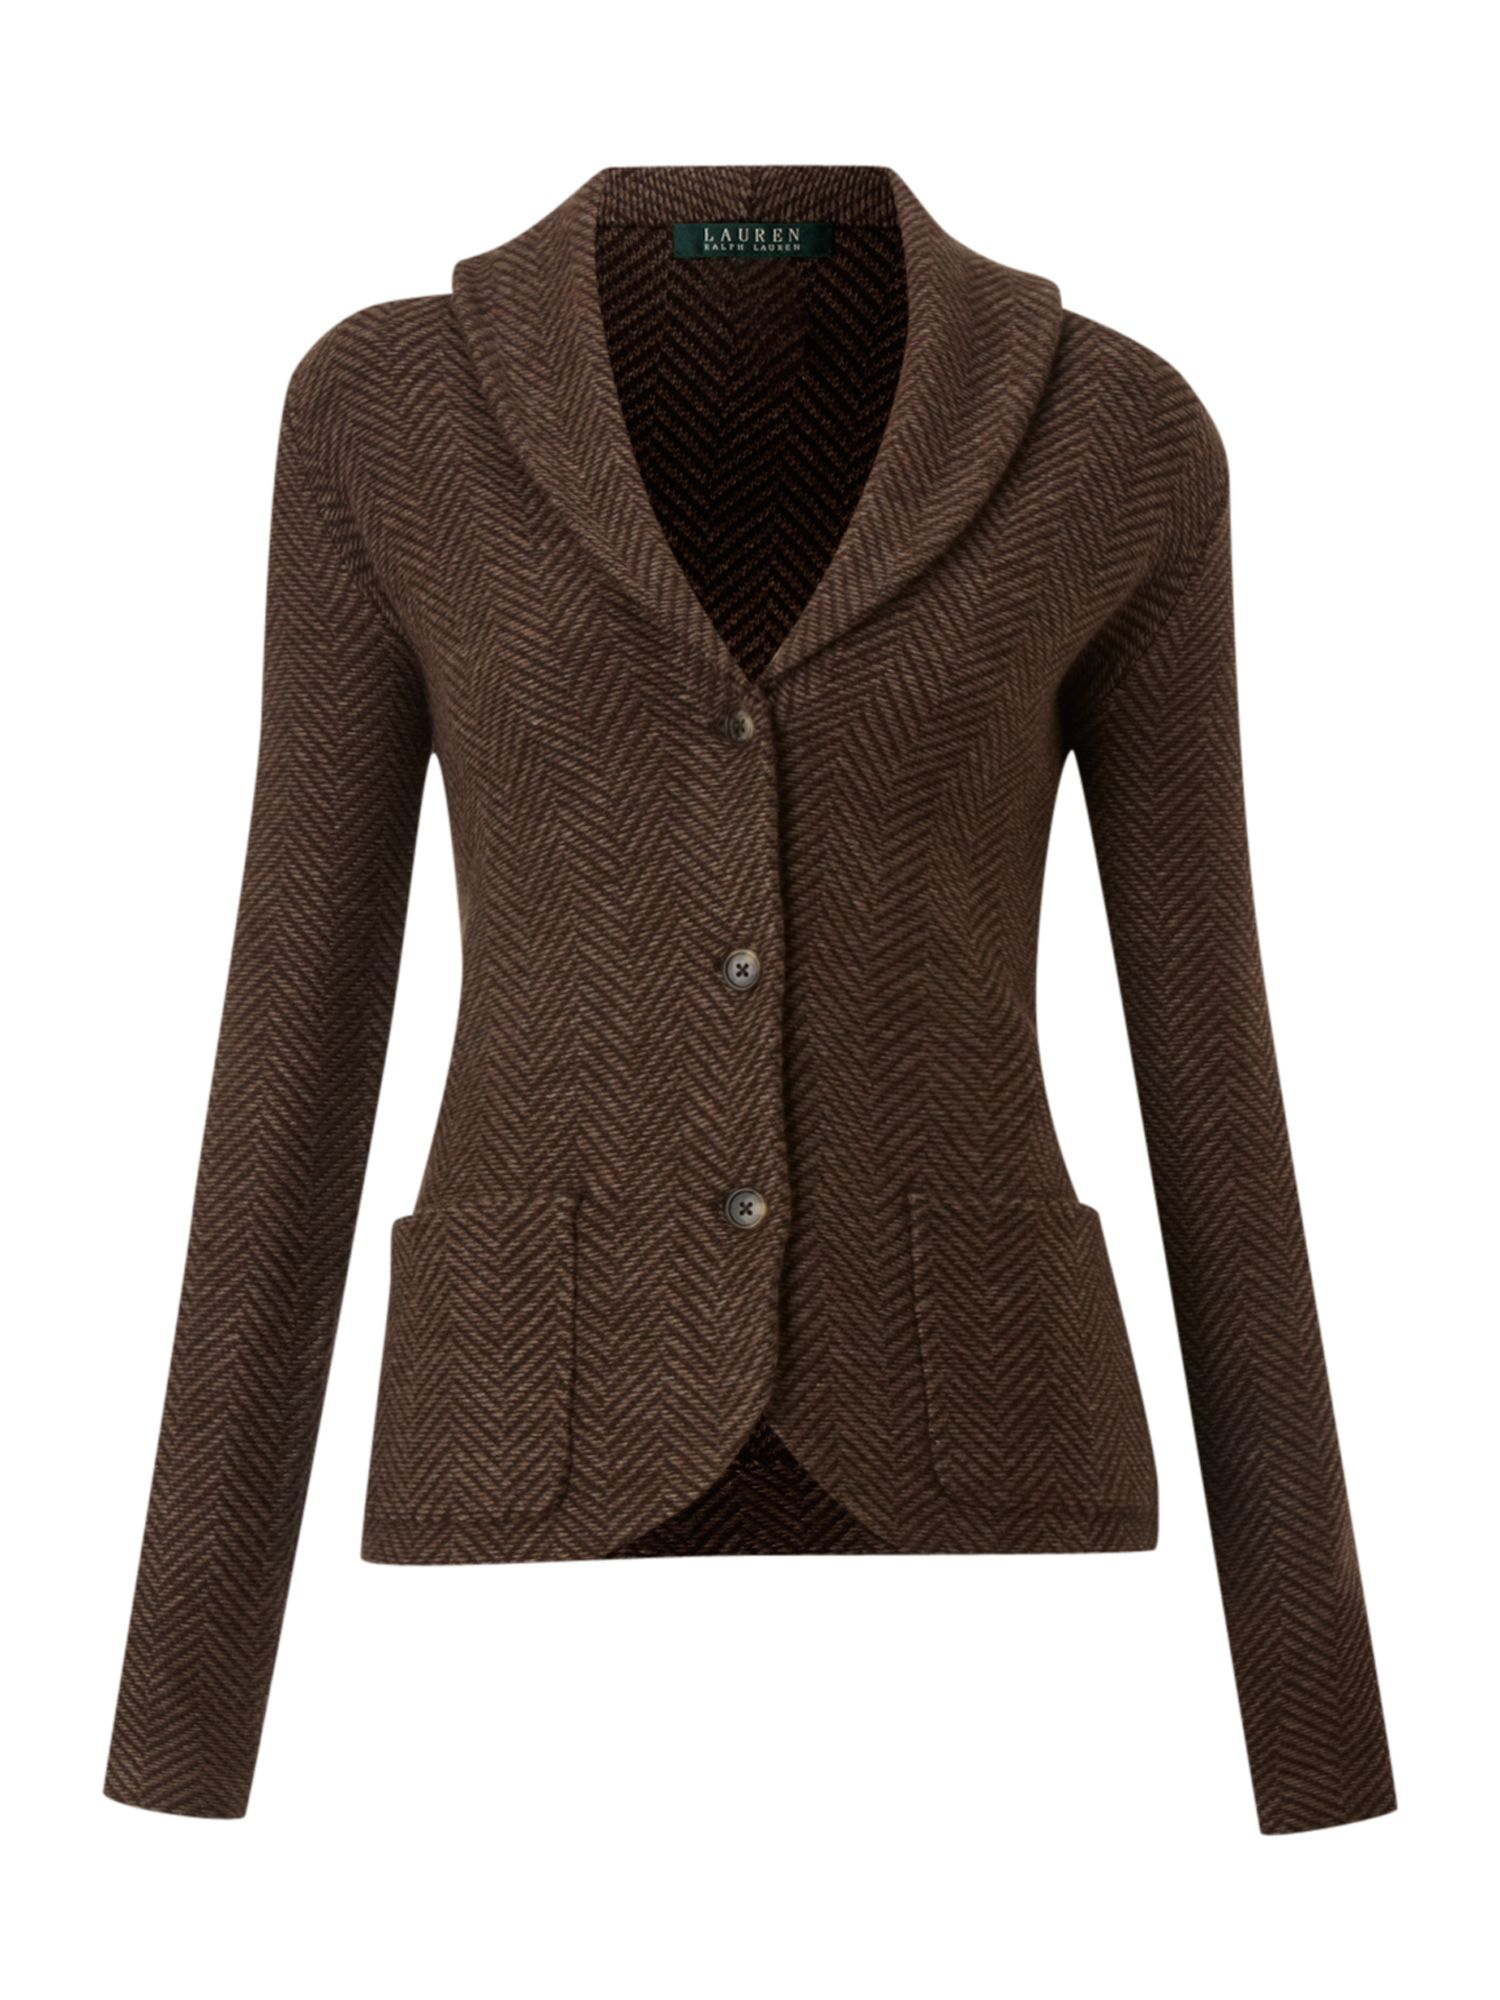 Find great deals on eBay for brown cardigan. Shop with confidence.